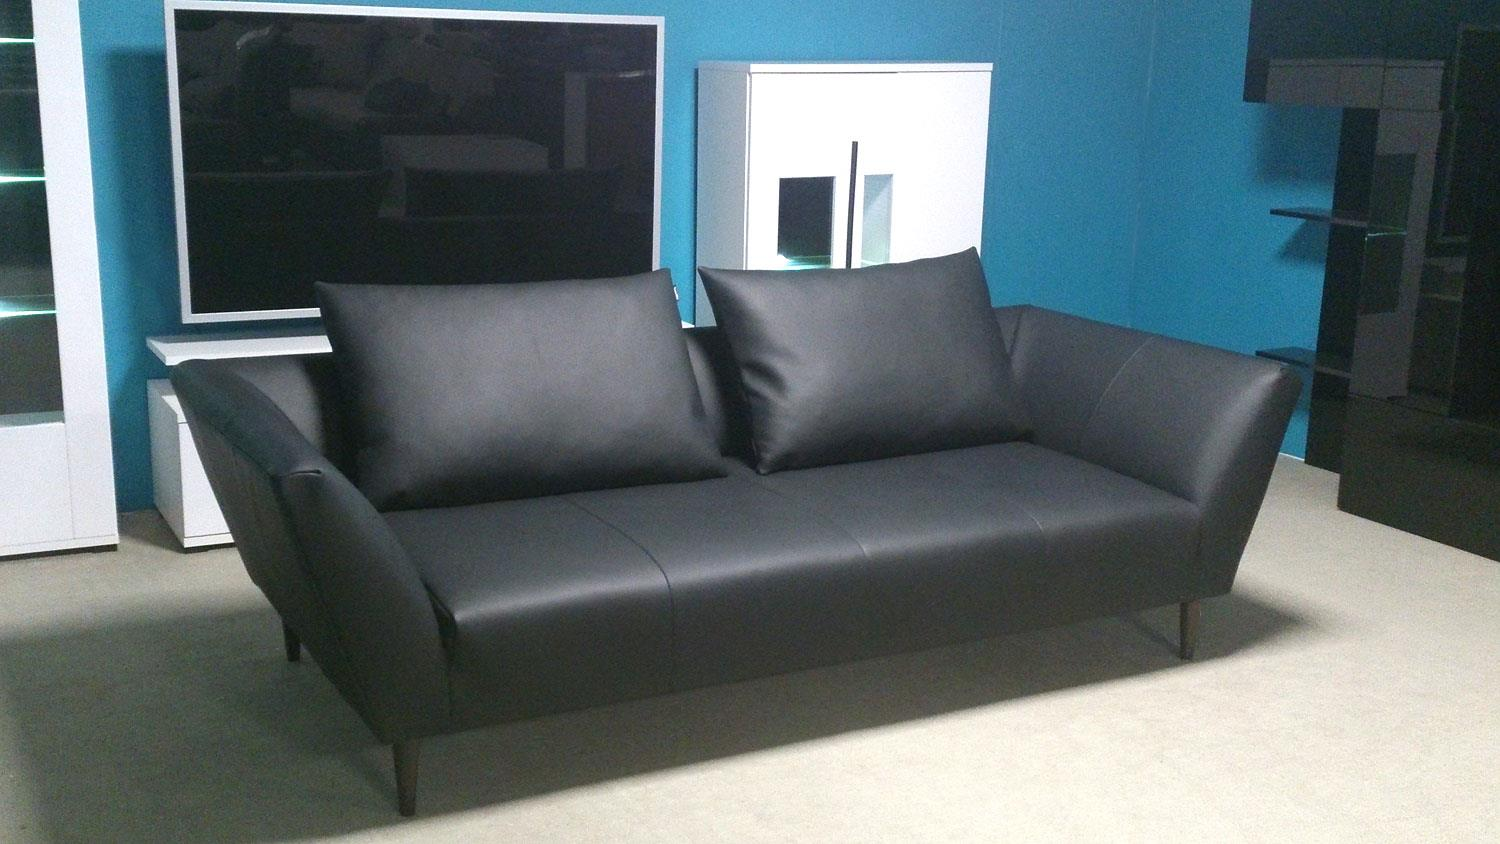 sofa freistil 176 rolf benz sofabank leder schwarz mit 2 kissen. Black Bedroom Furniture Sets. Home Design Ideas